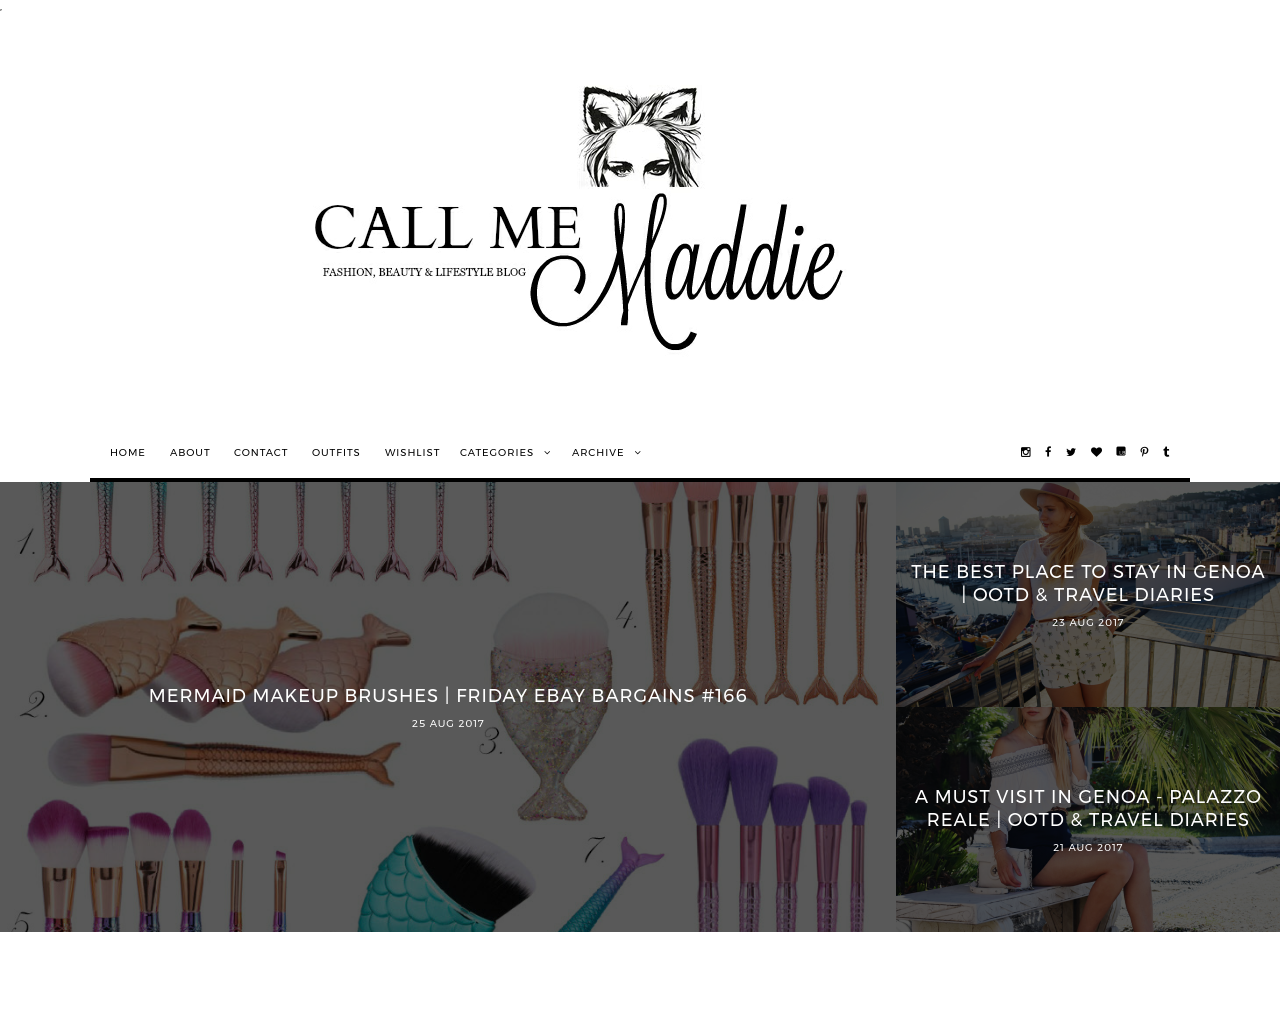 Call-Me-Maddie-Advertising-Reviews-Pricing